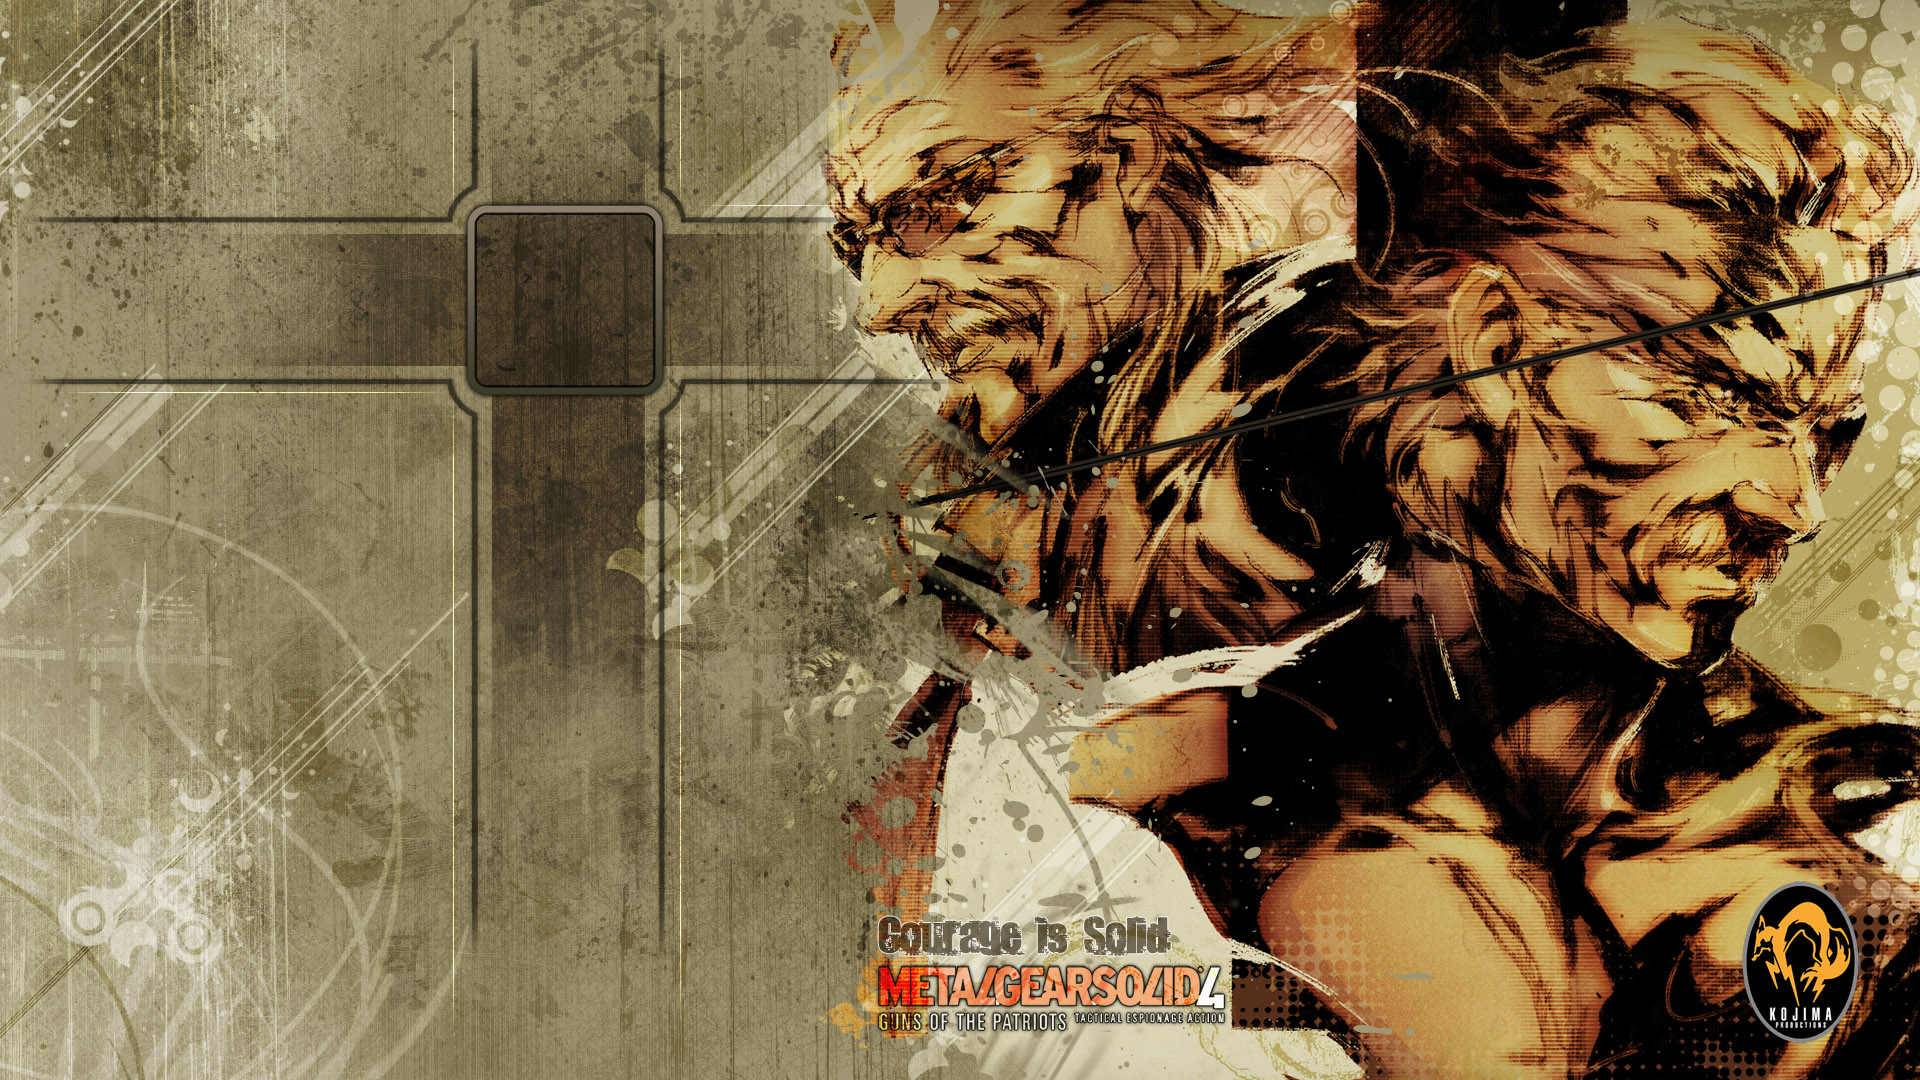 MGS4 - Courage is Solid Wallpapers